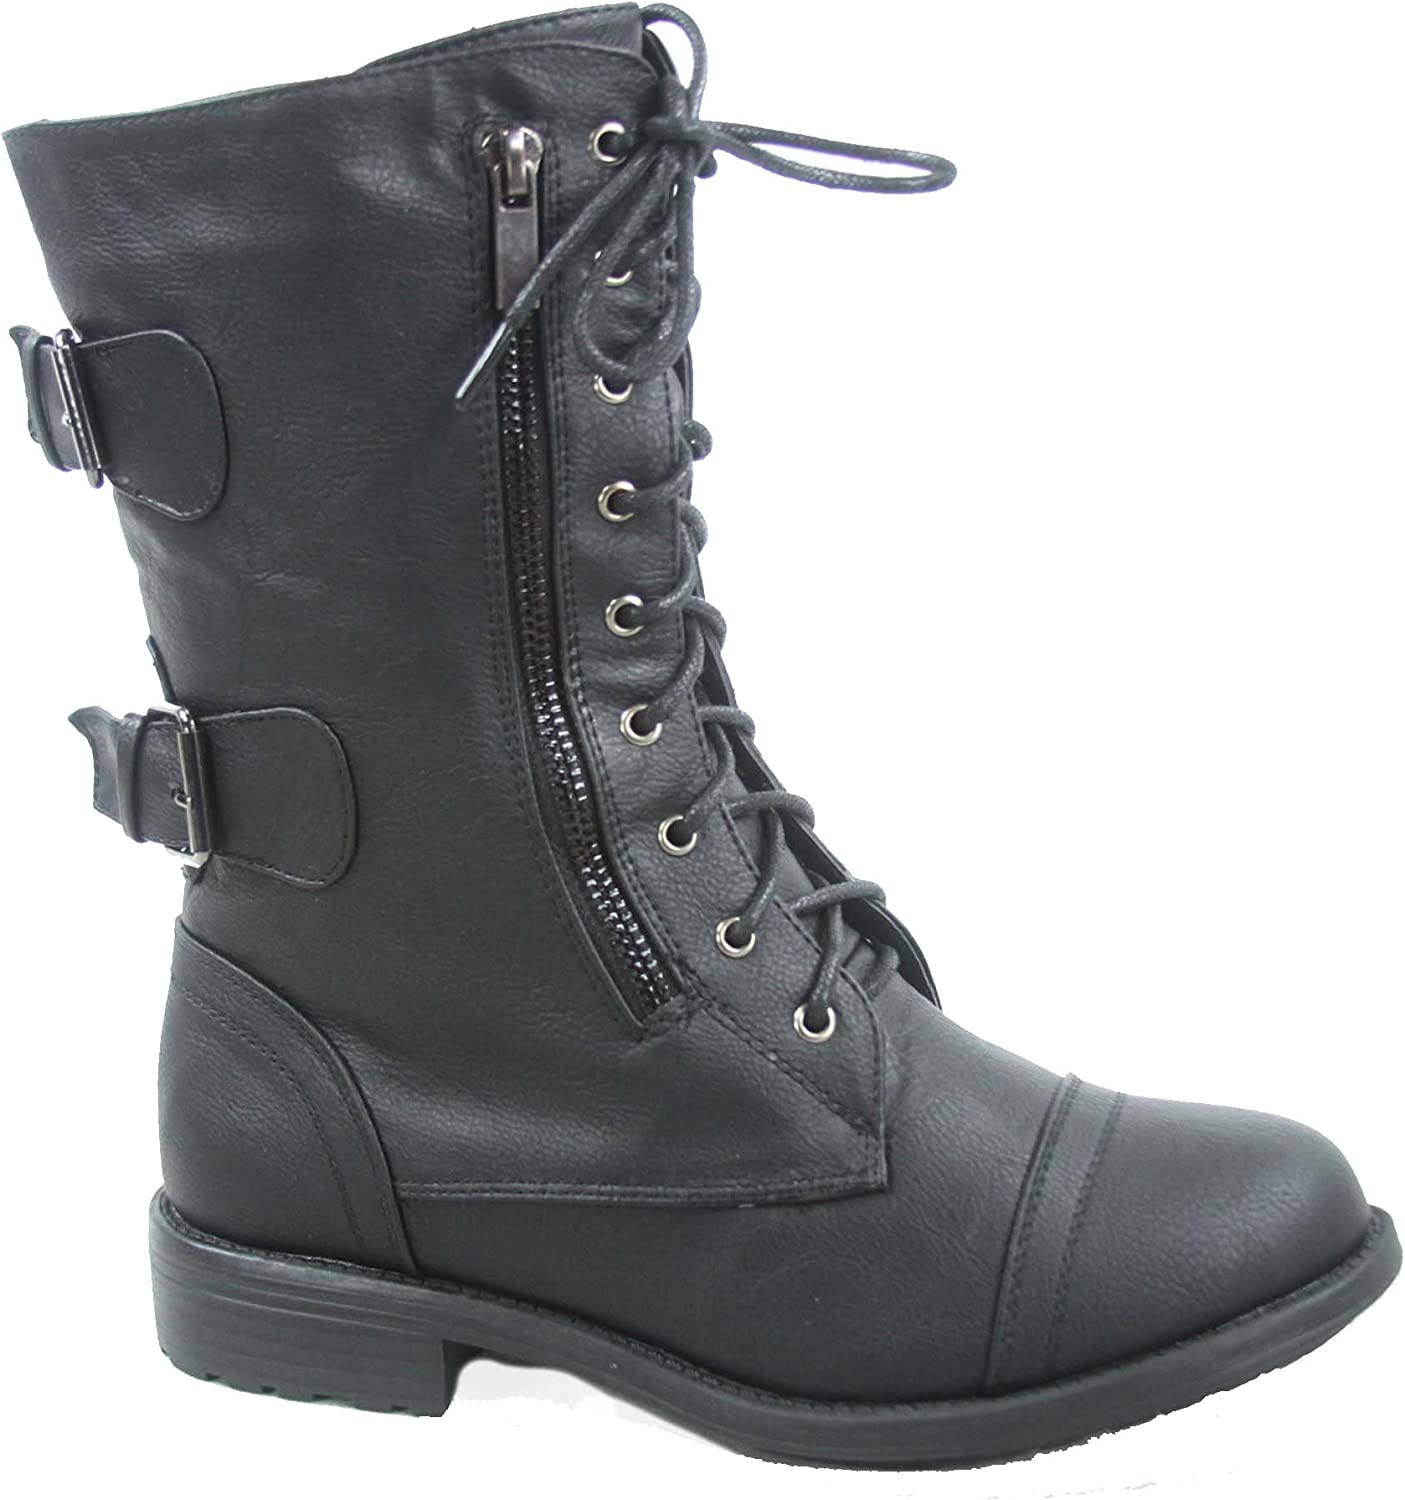 Top Moda Pack-72 Women's Fashion Mid Calf Low Heel Combat Military Zipper Lace Up shoes